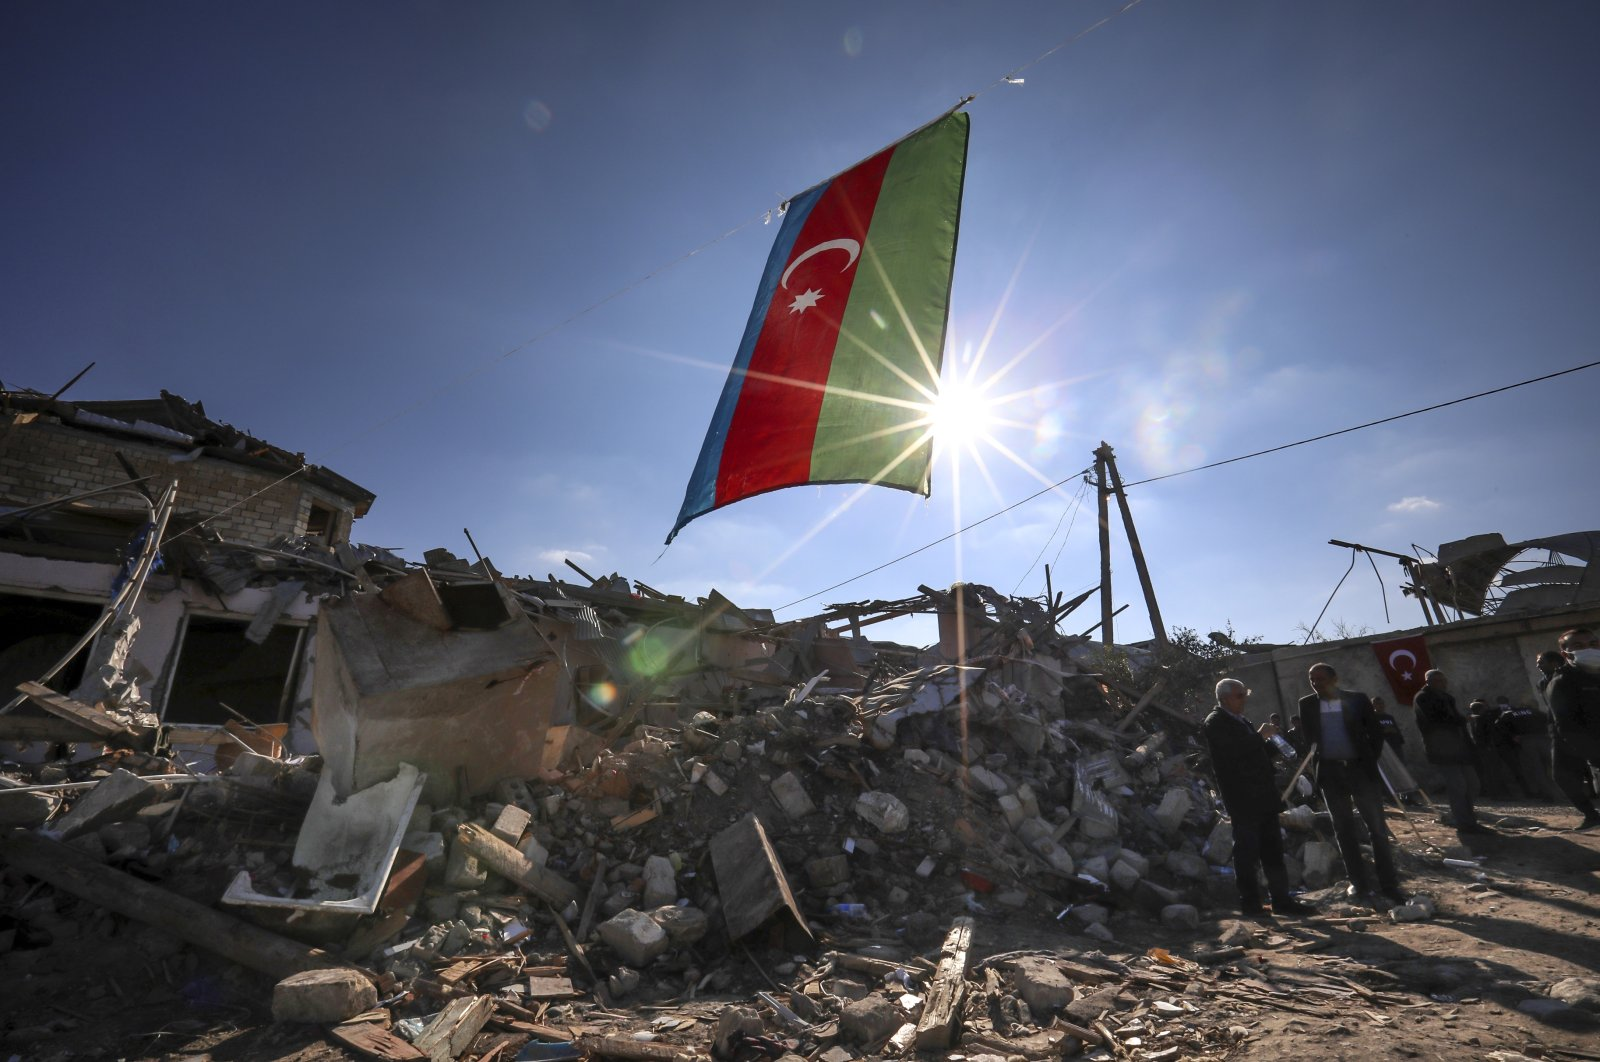 Azerbaijan's national flag flies over destroyed houses in a residential area that was hit by rocket fire overnight by Armenian forces in Ganja, Azerbaijan, Oct. 22, 2020. (AP Photo)